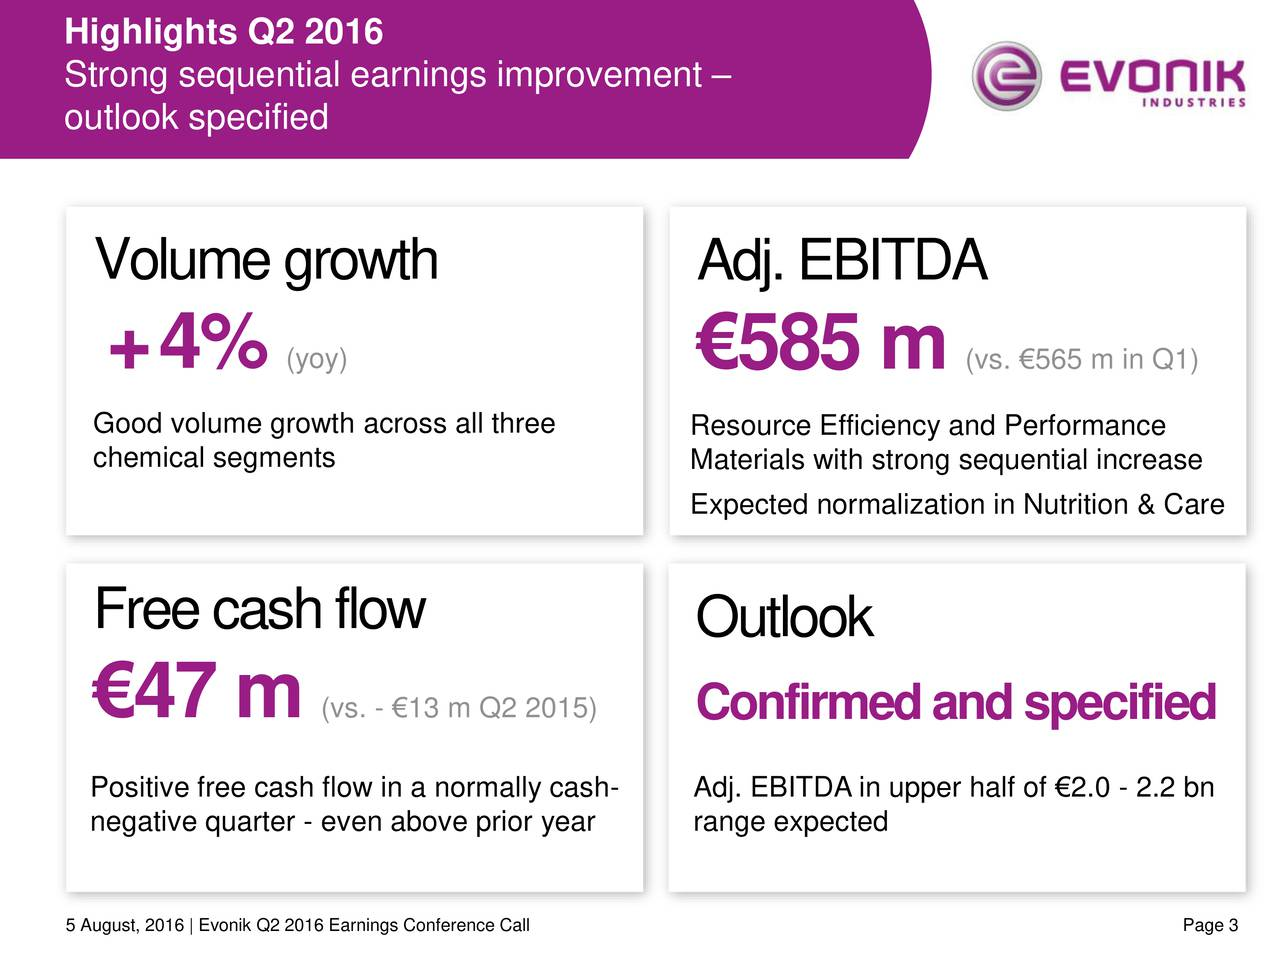 Strong sequential earnings improvement outlook specified Volumegrowth Adj.EBITDA +4% (yoy) 585 m (vs. 565 m in Q1) Good volume growth across all tResource Efficiency and Performance chemical segments Materials with strong sequential increase Expected normalization in Nutrition & Care Freecashflow Outlook 47 m (vs. - 13 m Q2 2015Confirmedandspecified Positive free cash flow in a norAdj. EBITDA in upper half of 2.0 - 2.2 bn negative quarter - even above prrange expected 5 August, 2016 | Evonik Q2 2016 Earnings Conference Call Page 3